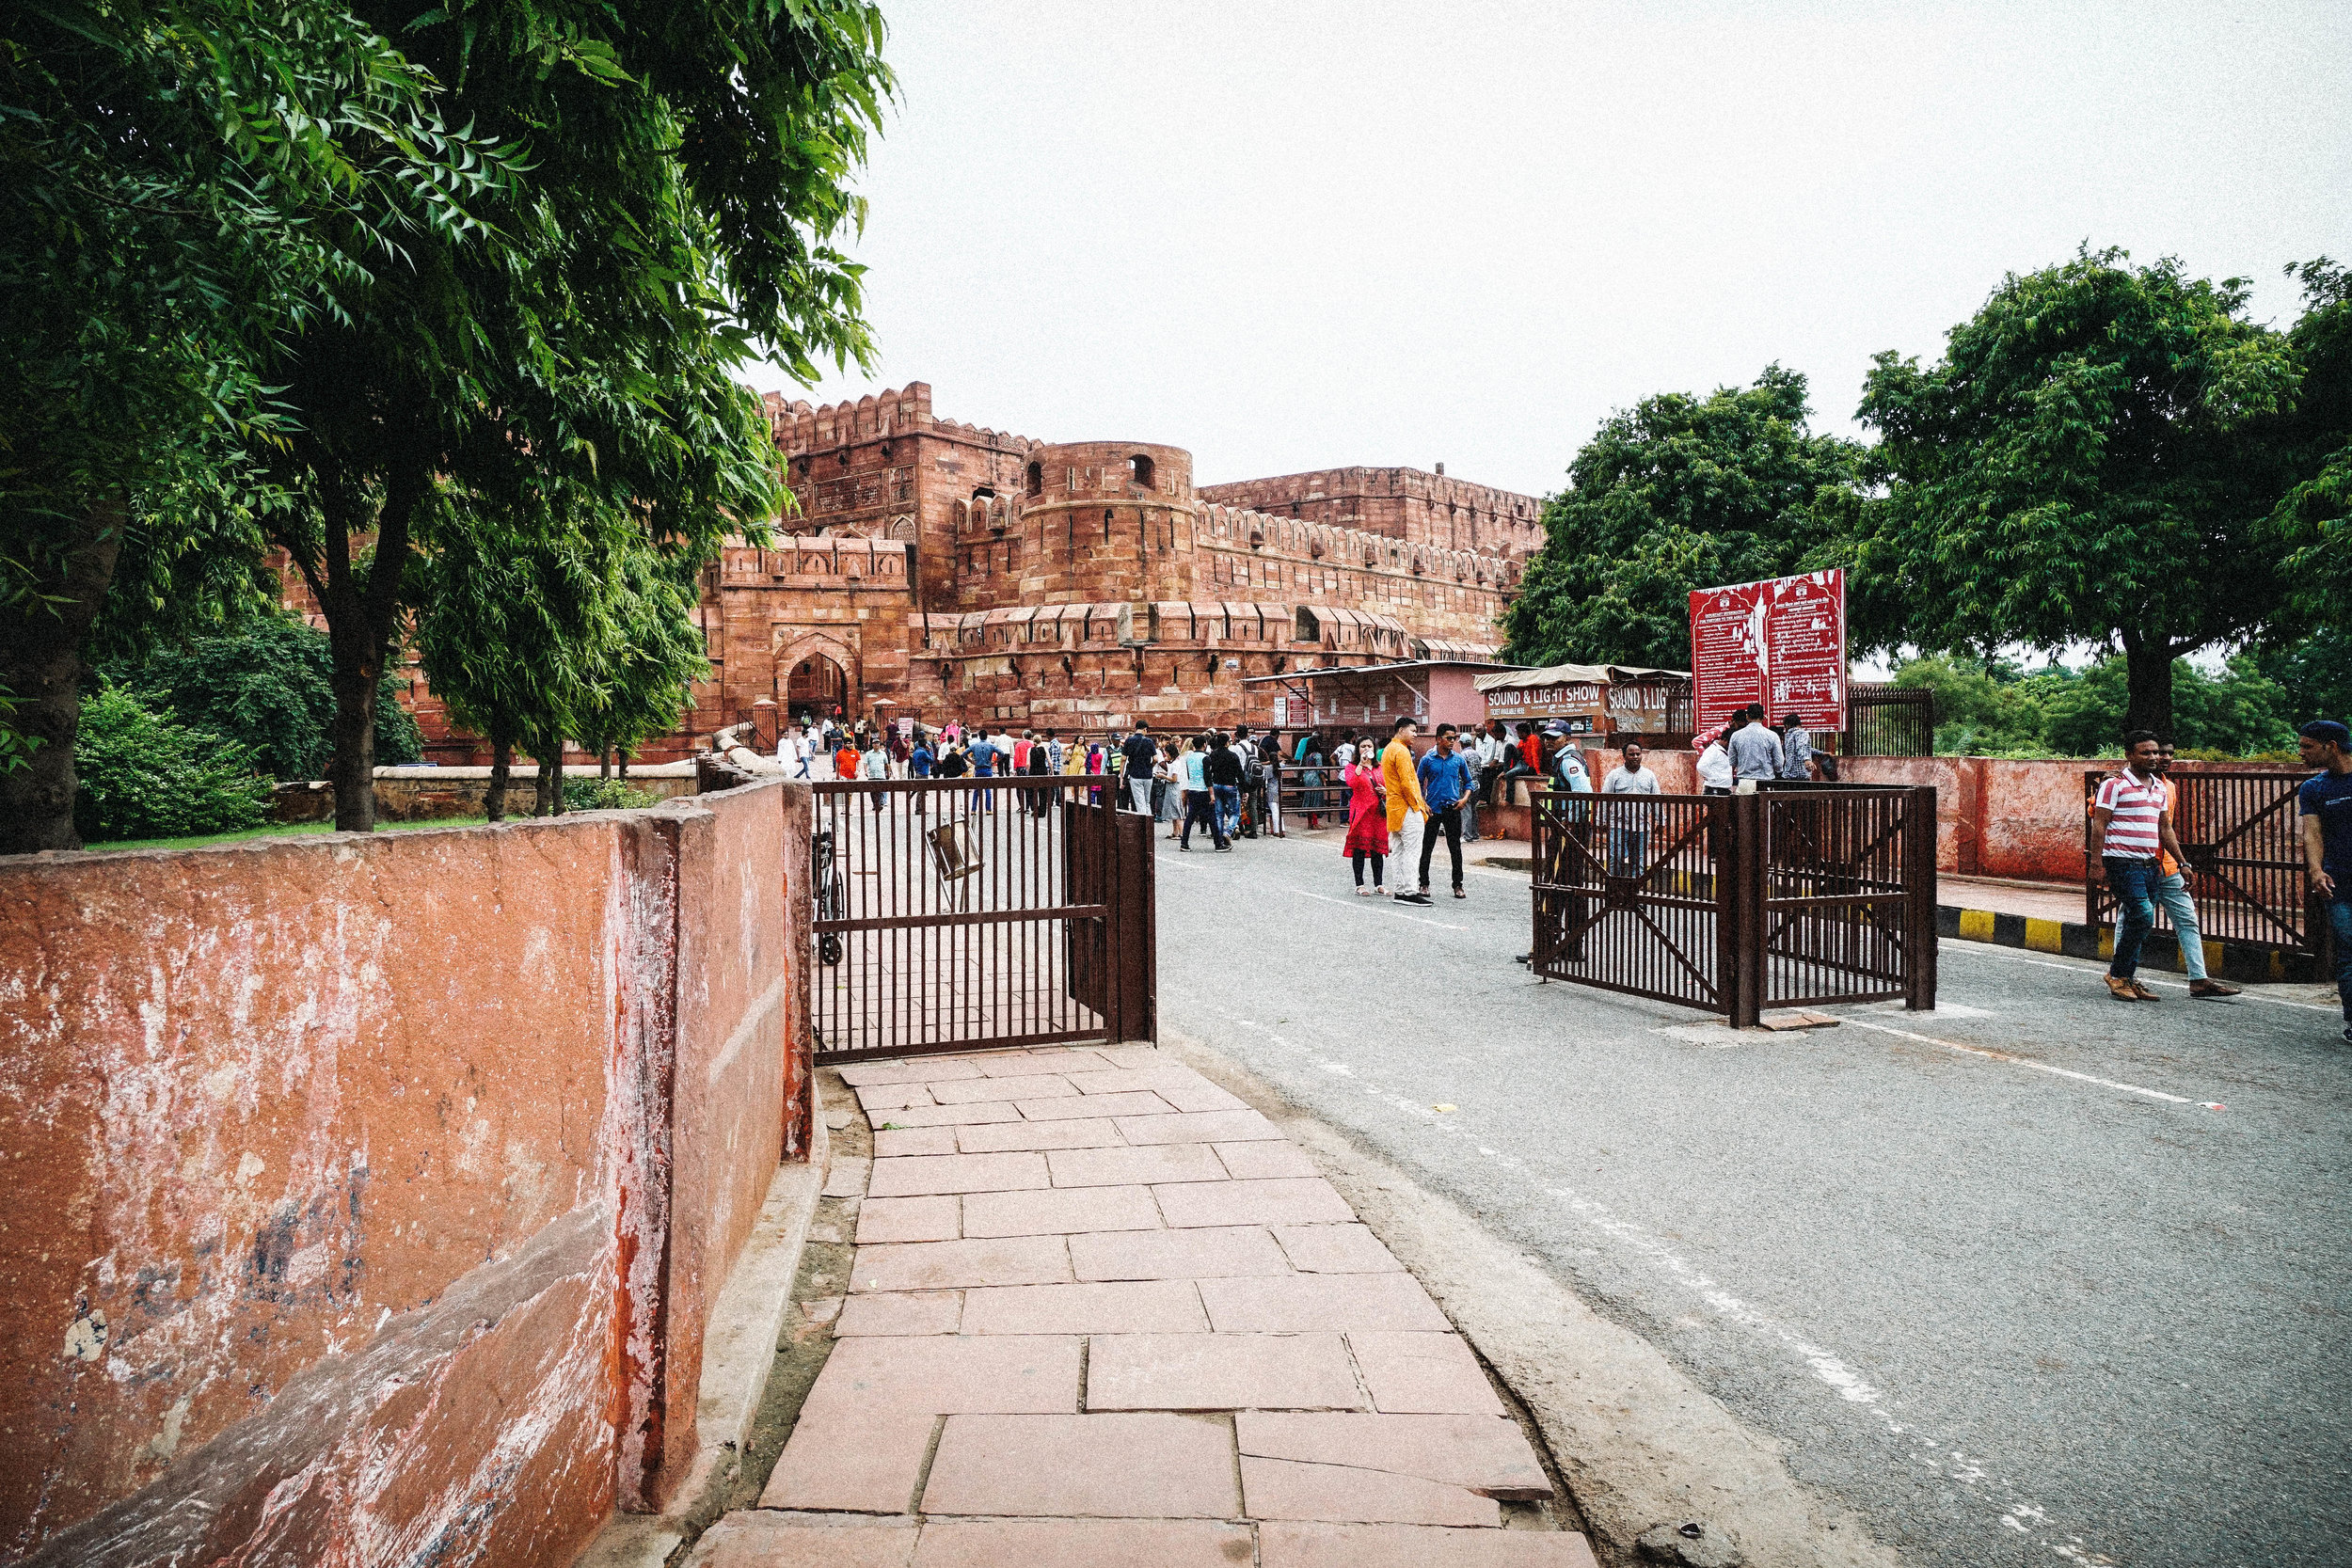 agra visual diary india travel guide_6.jpg